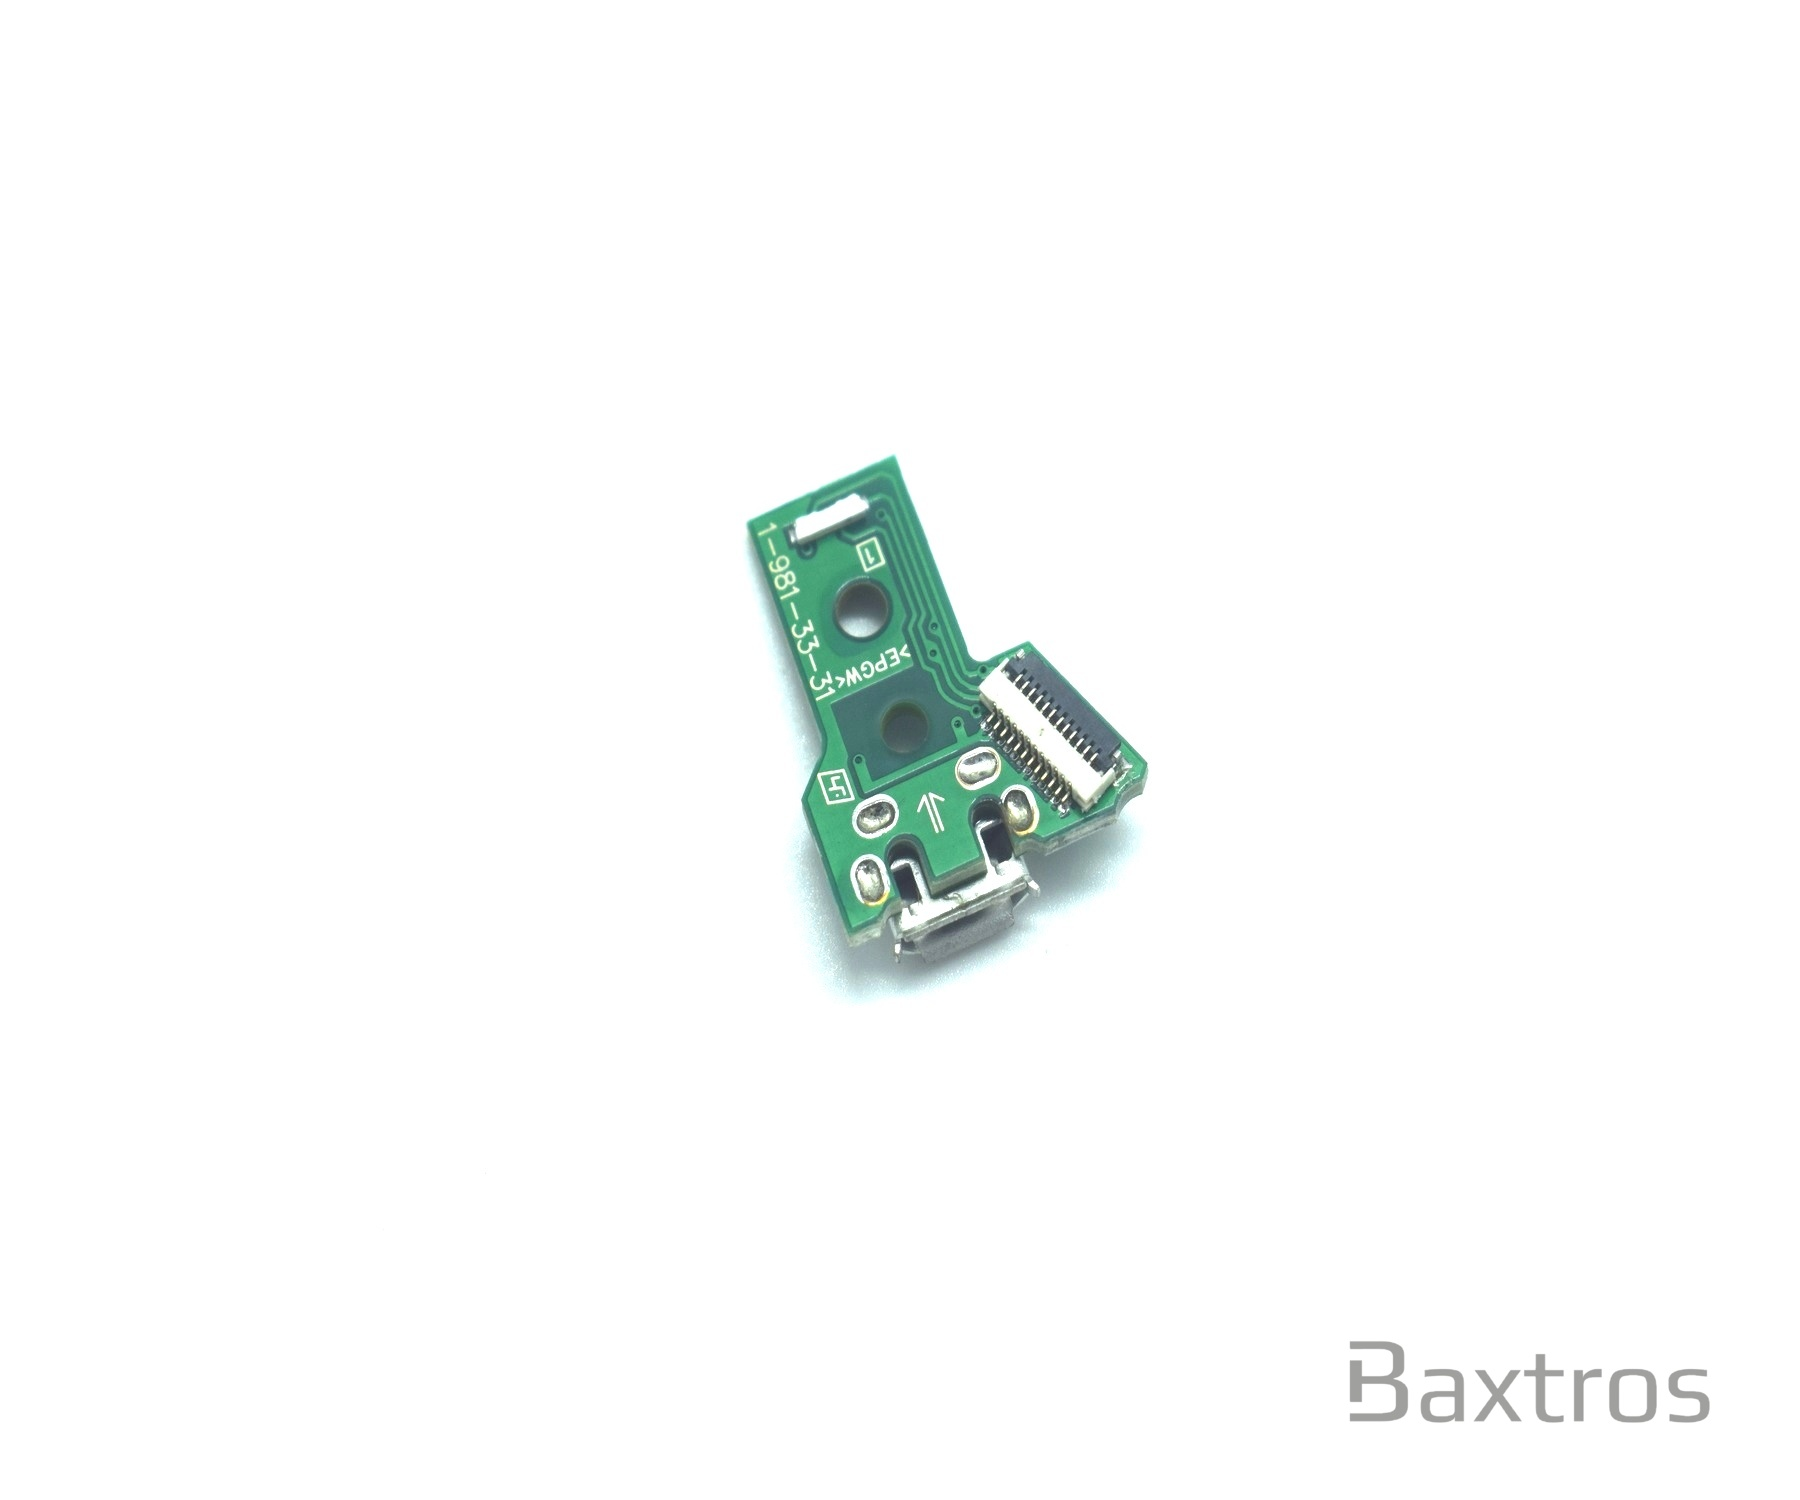 Replacement Jds 040 Usb Port For Sony Ps4 Controller